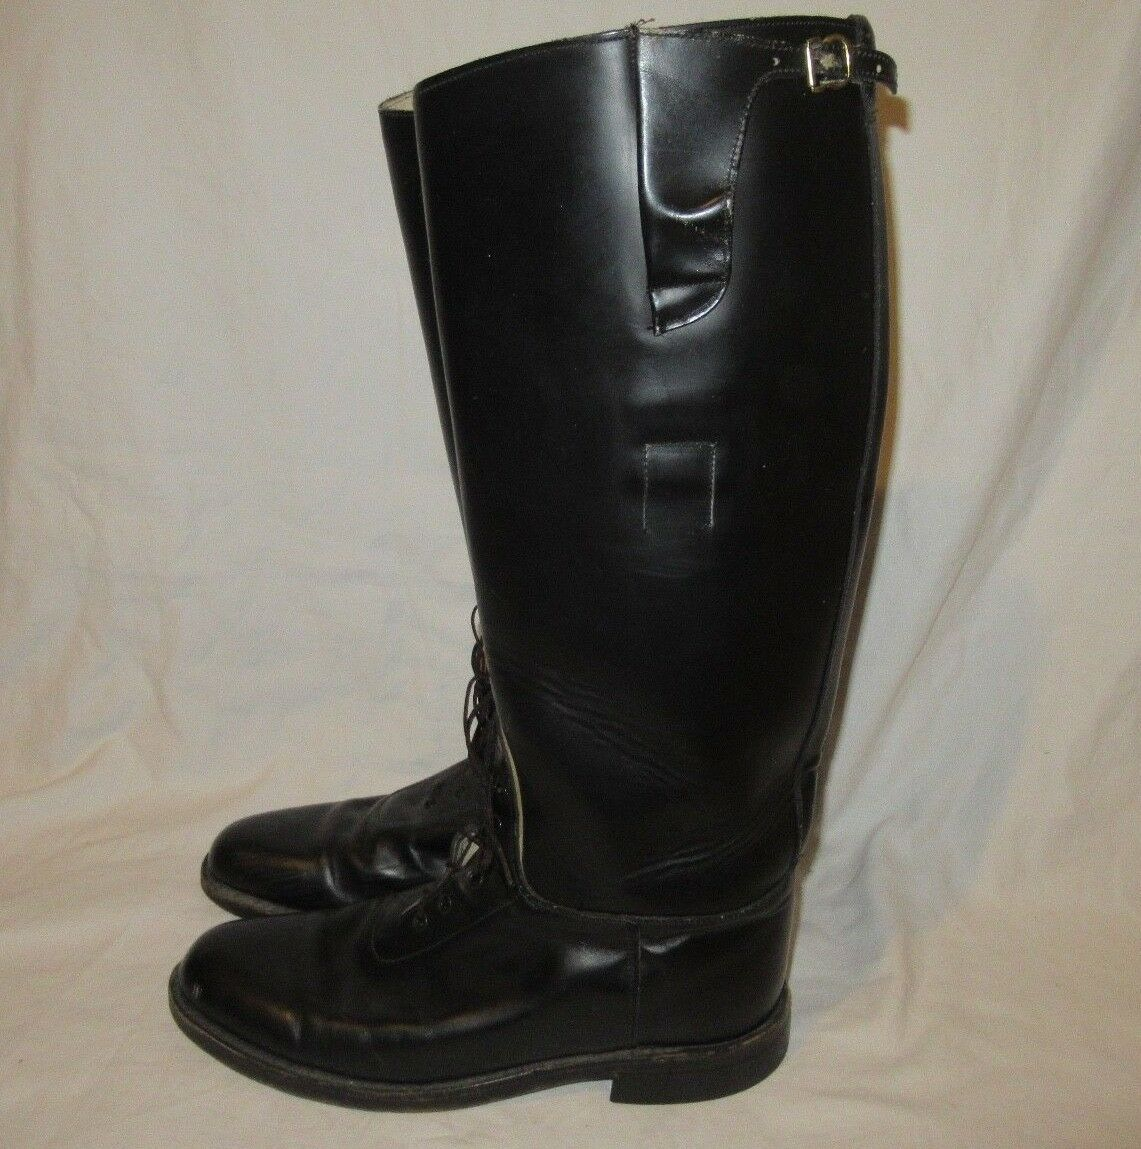 Vintage Equestrian Riding Boots Black Womens  Size 8.5  Leather Sole made in USA